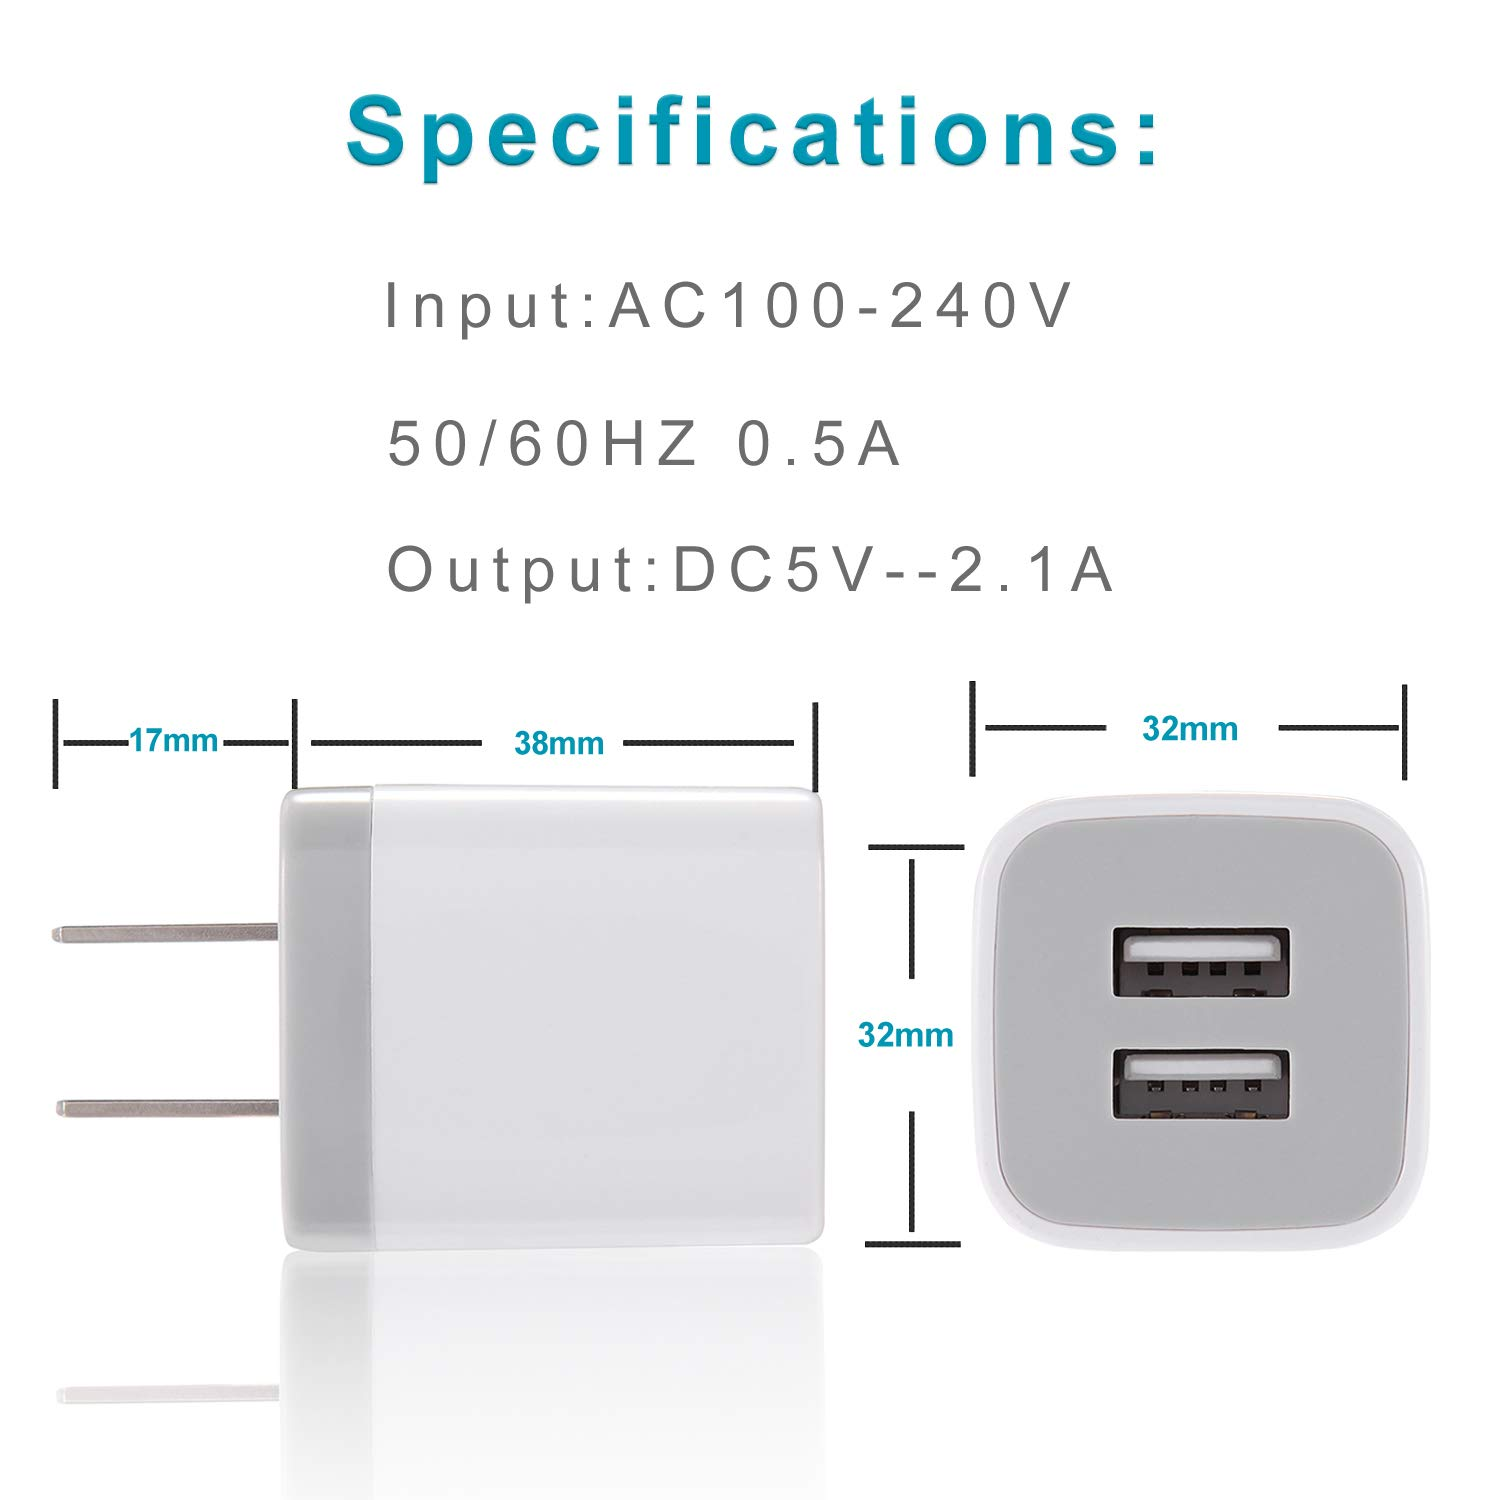 iPhone Charger, DENWAN Dual USB Wall Adapter Plug Block 2.1A/5V with 2-Pack (6ft / 3ft) Fast Charging Cable for iPhone X/8/7/6S Plus SE/5S/5C, iPad, iPod by DENWAN (Image #6)